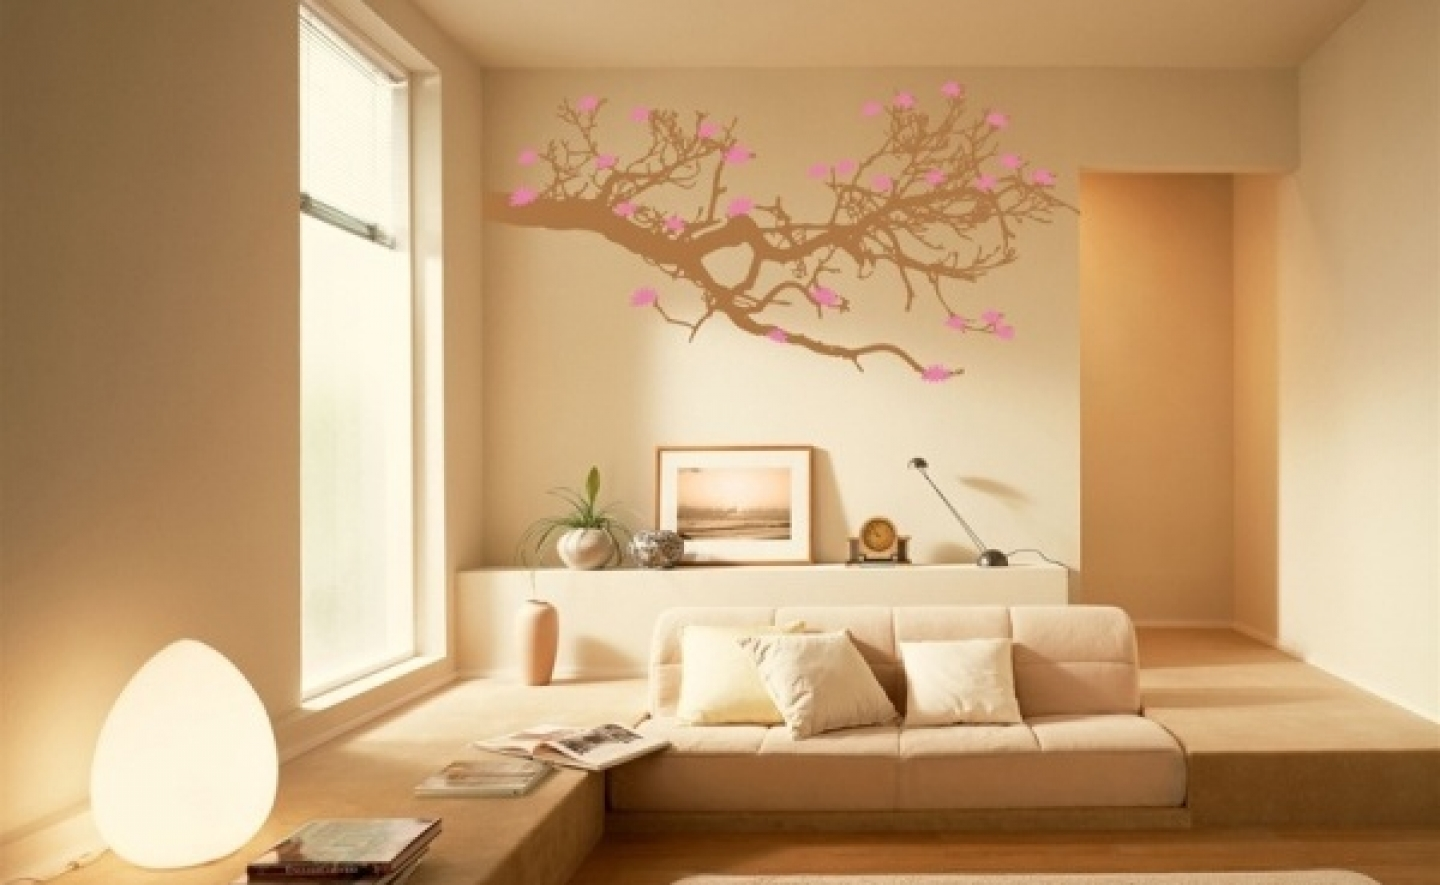 4 Major Signs It's Time To Repaint Your Interior Walls